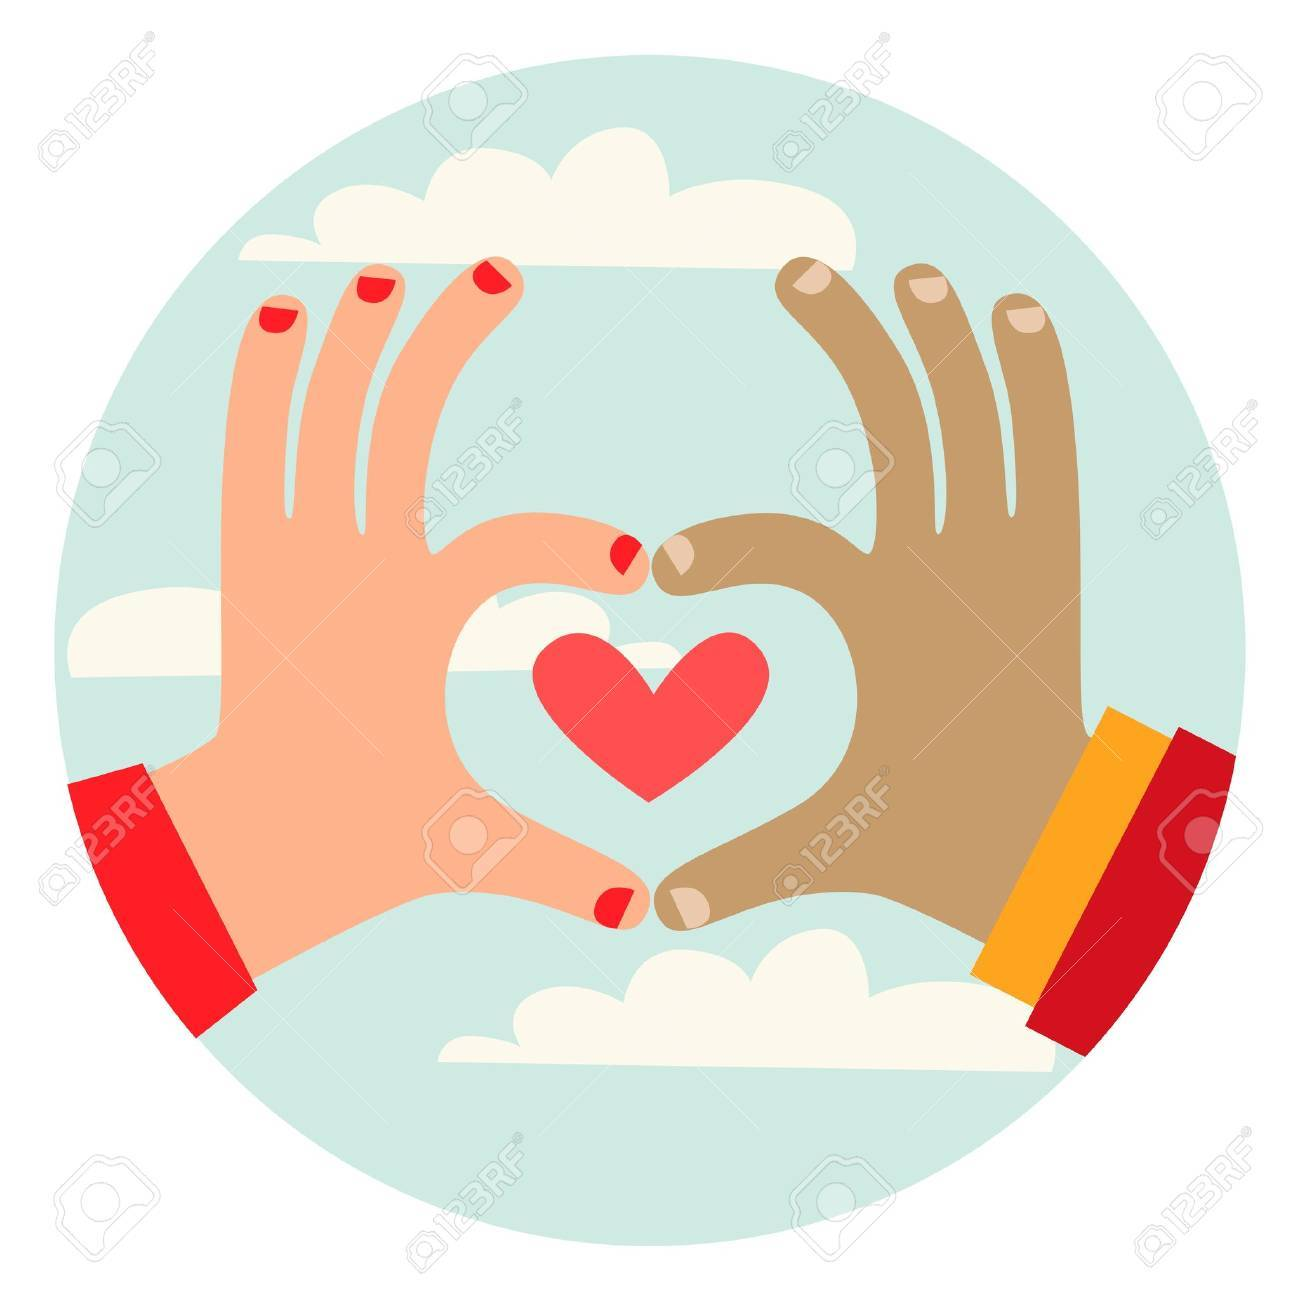 Love Gesture Stock Vector - 18996557